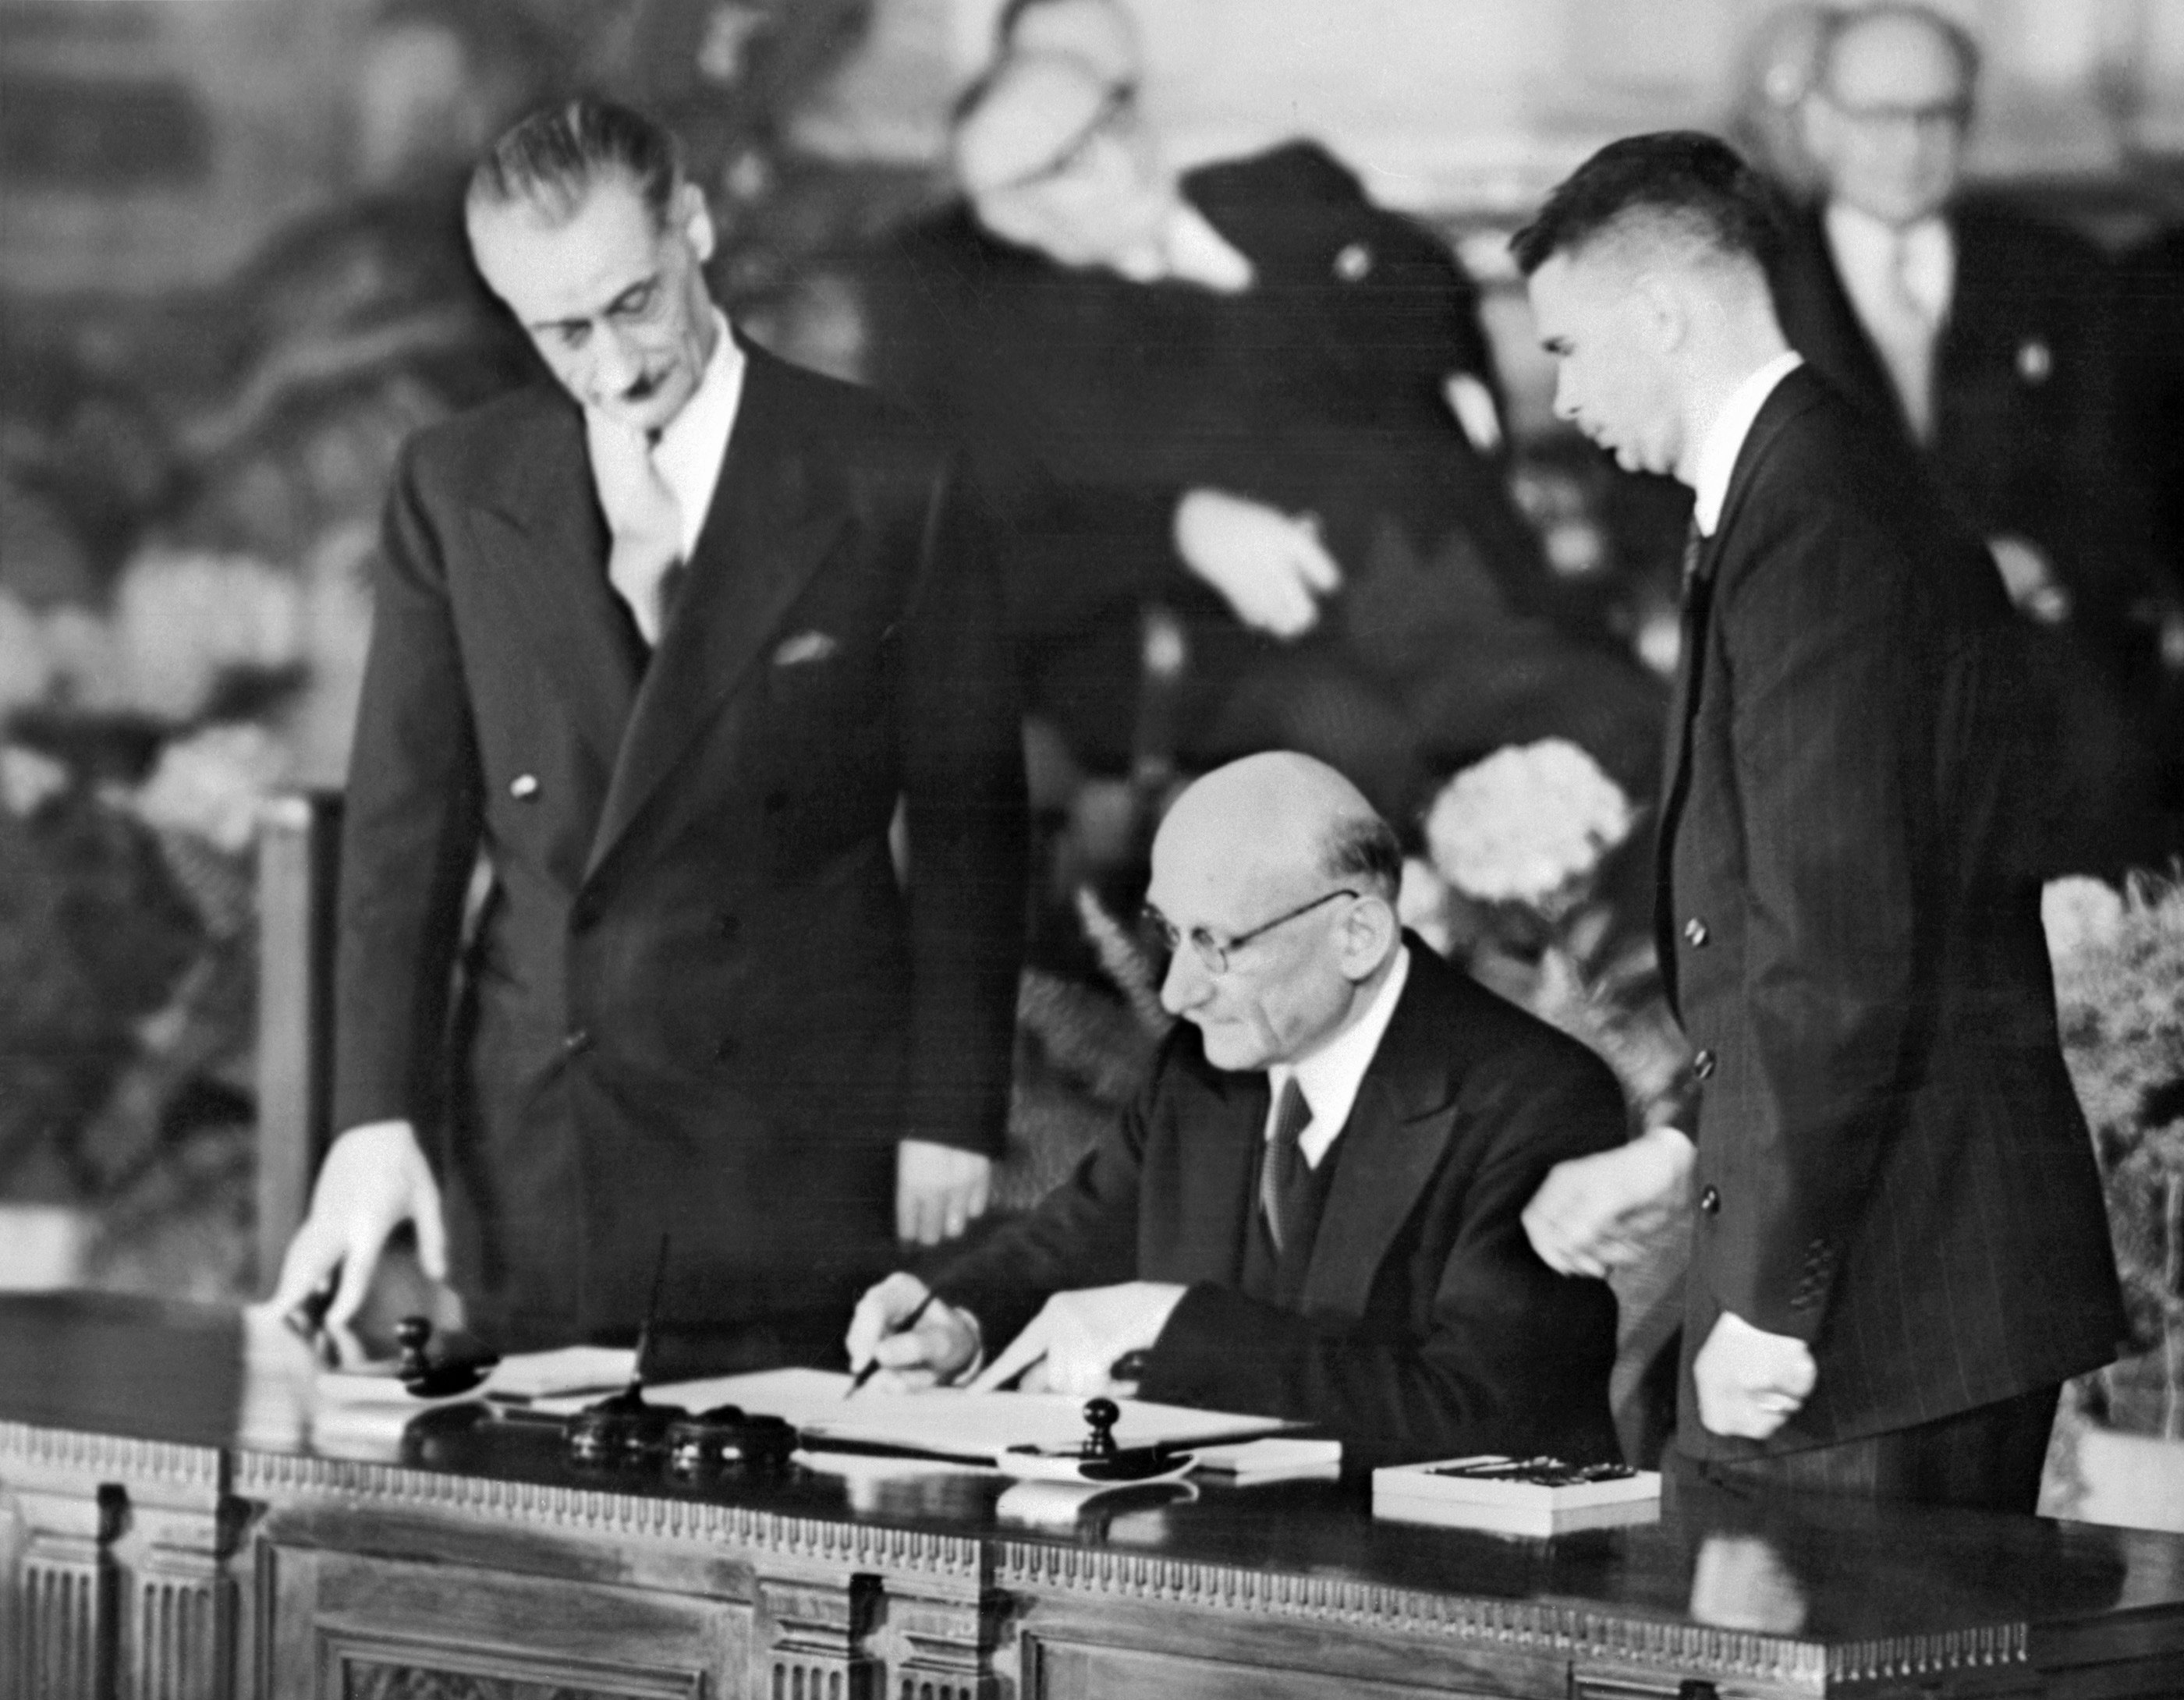 French foreign minister Robert Schuman signs 04 April 1949 the North Atlantic treaty during an official ceremony in Washington creating the North Atlantic Treaty Organization (NATO)